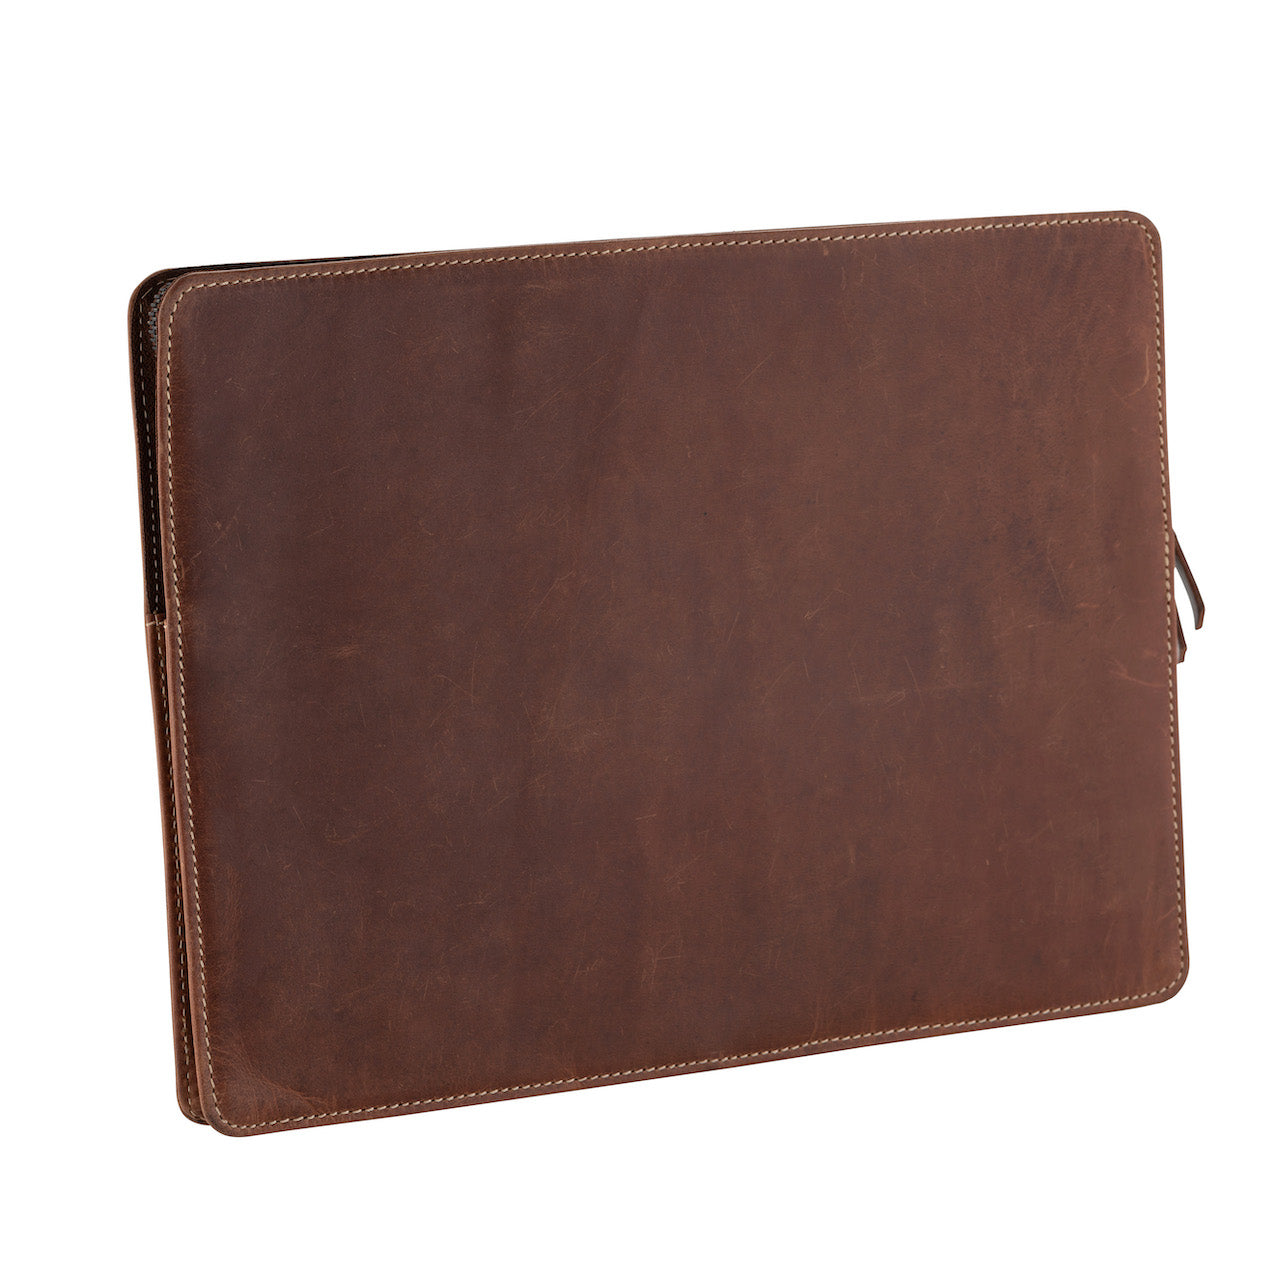 Tuk Tuk Press® Handmade Buffalo Leather Luxury Laptop Sleeves